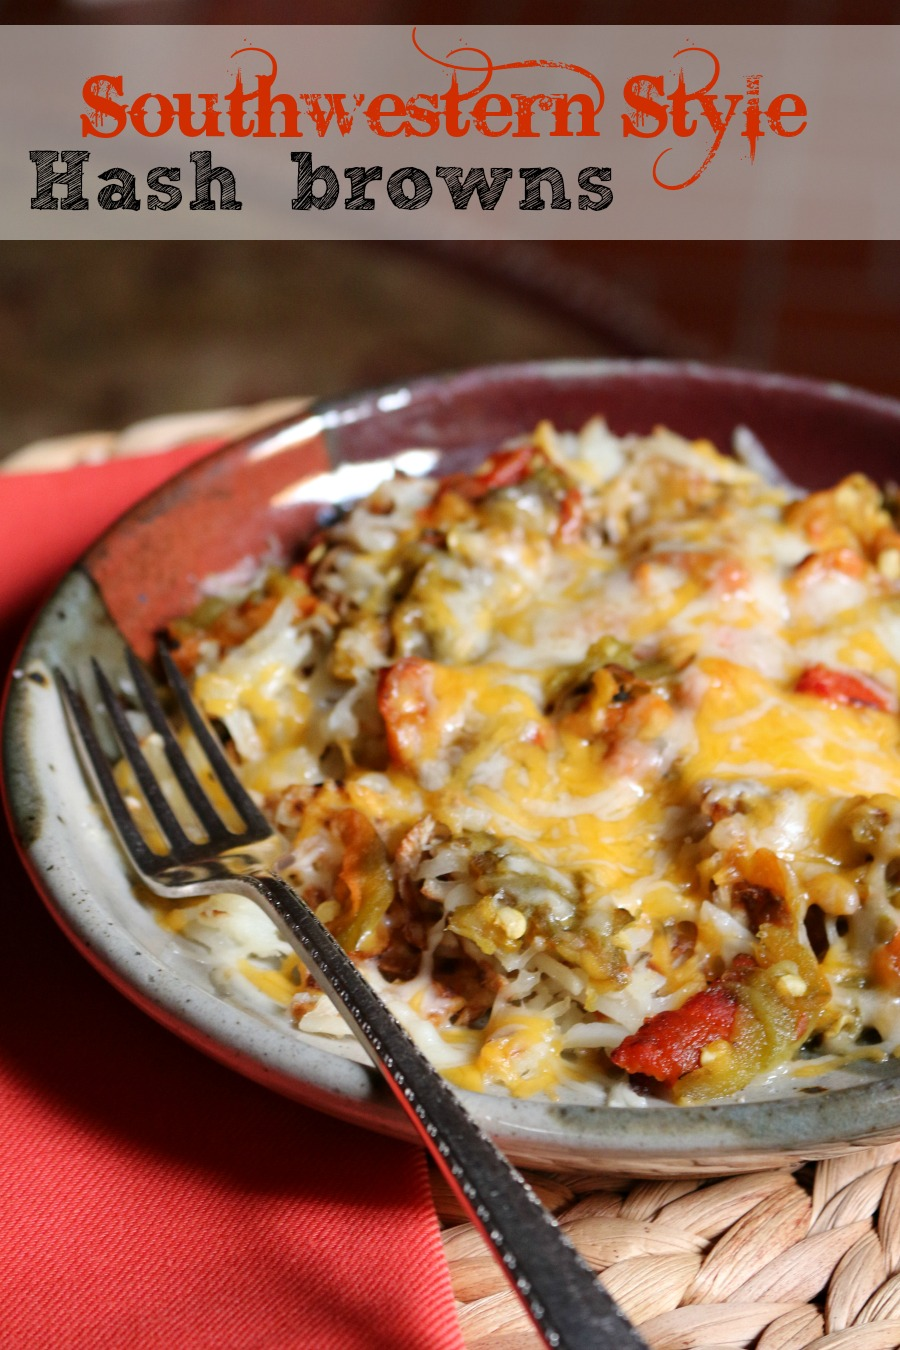 Southwestern Hash Browns - Crispy Hash Browns topped with fresh roasted New Mexico green chile and cheddar cheese. Delish!